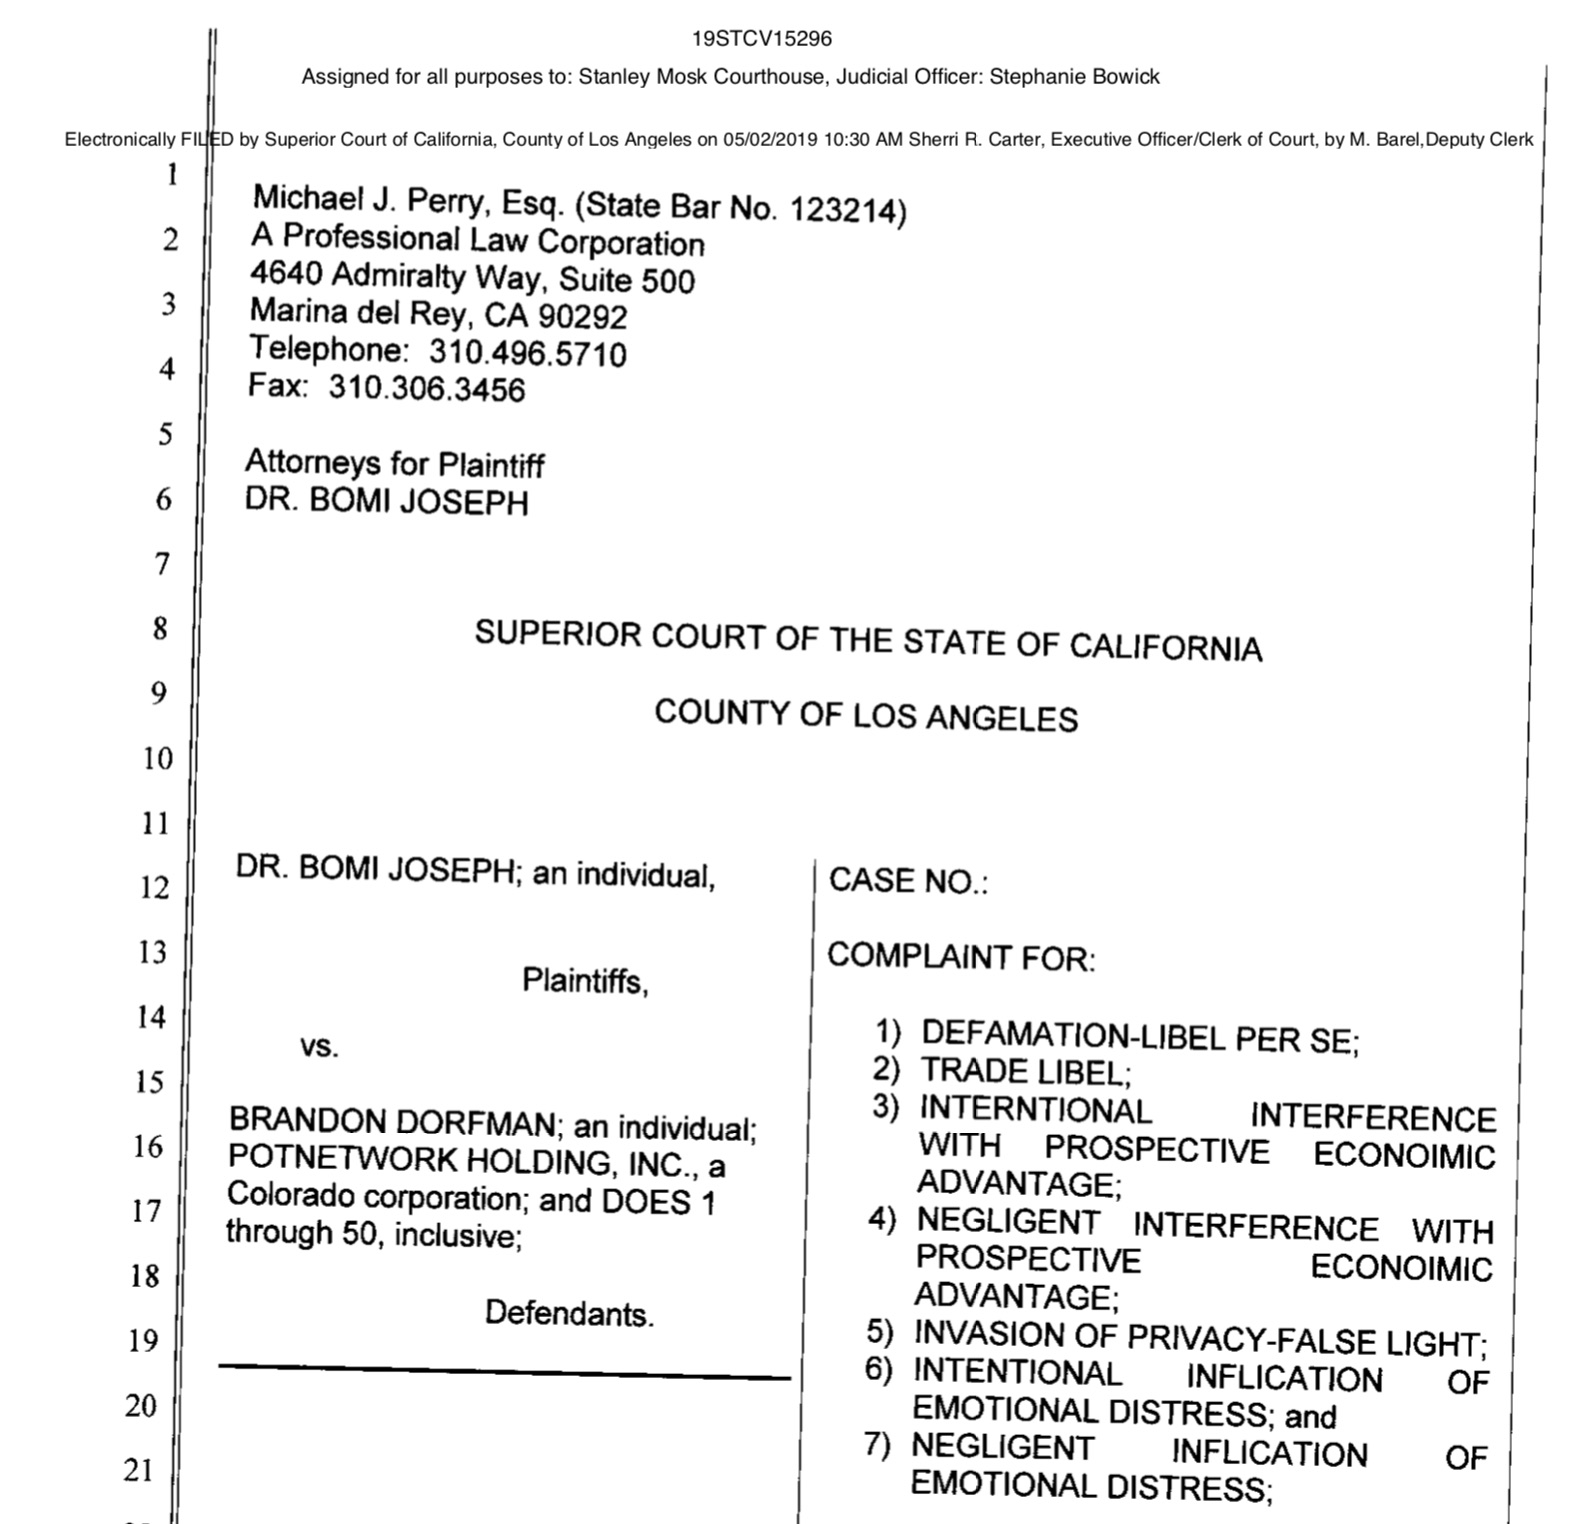 US$30 Million Lawsuit filed in Los Angeles against Brandon Dorfman and Potnetwork Holding, Inc. on May 2 2019.